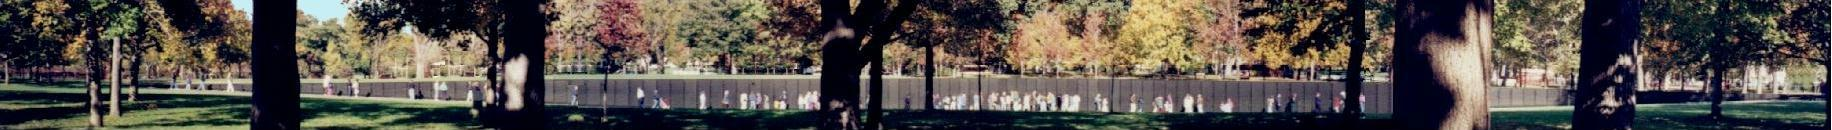 Vietnam Veteran's Memorial Panorama ~ Washington, D.C.